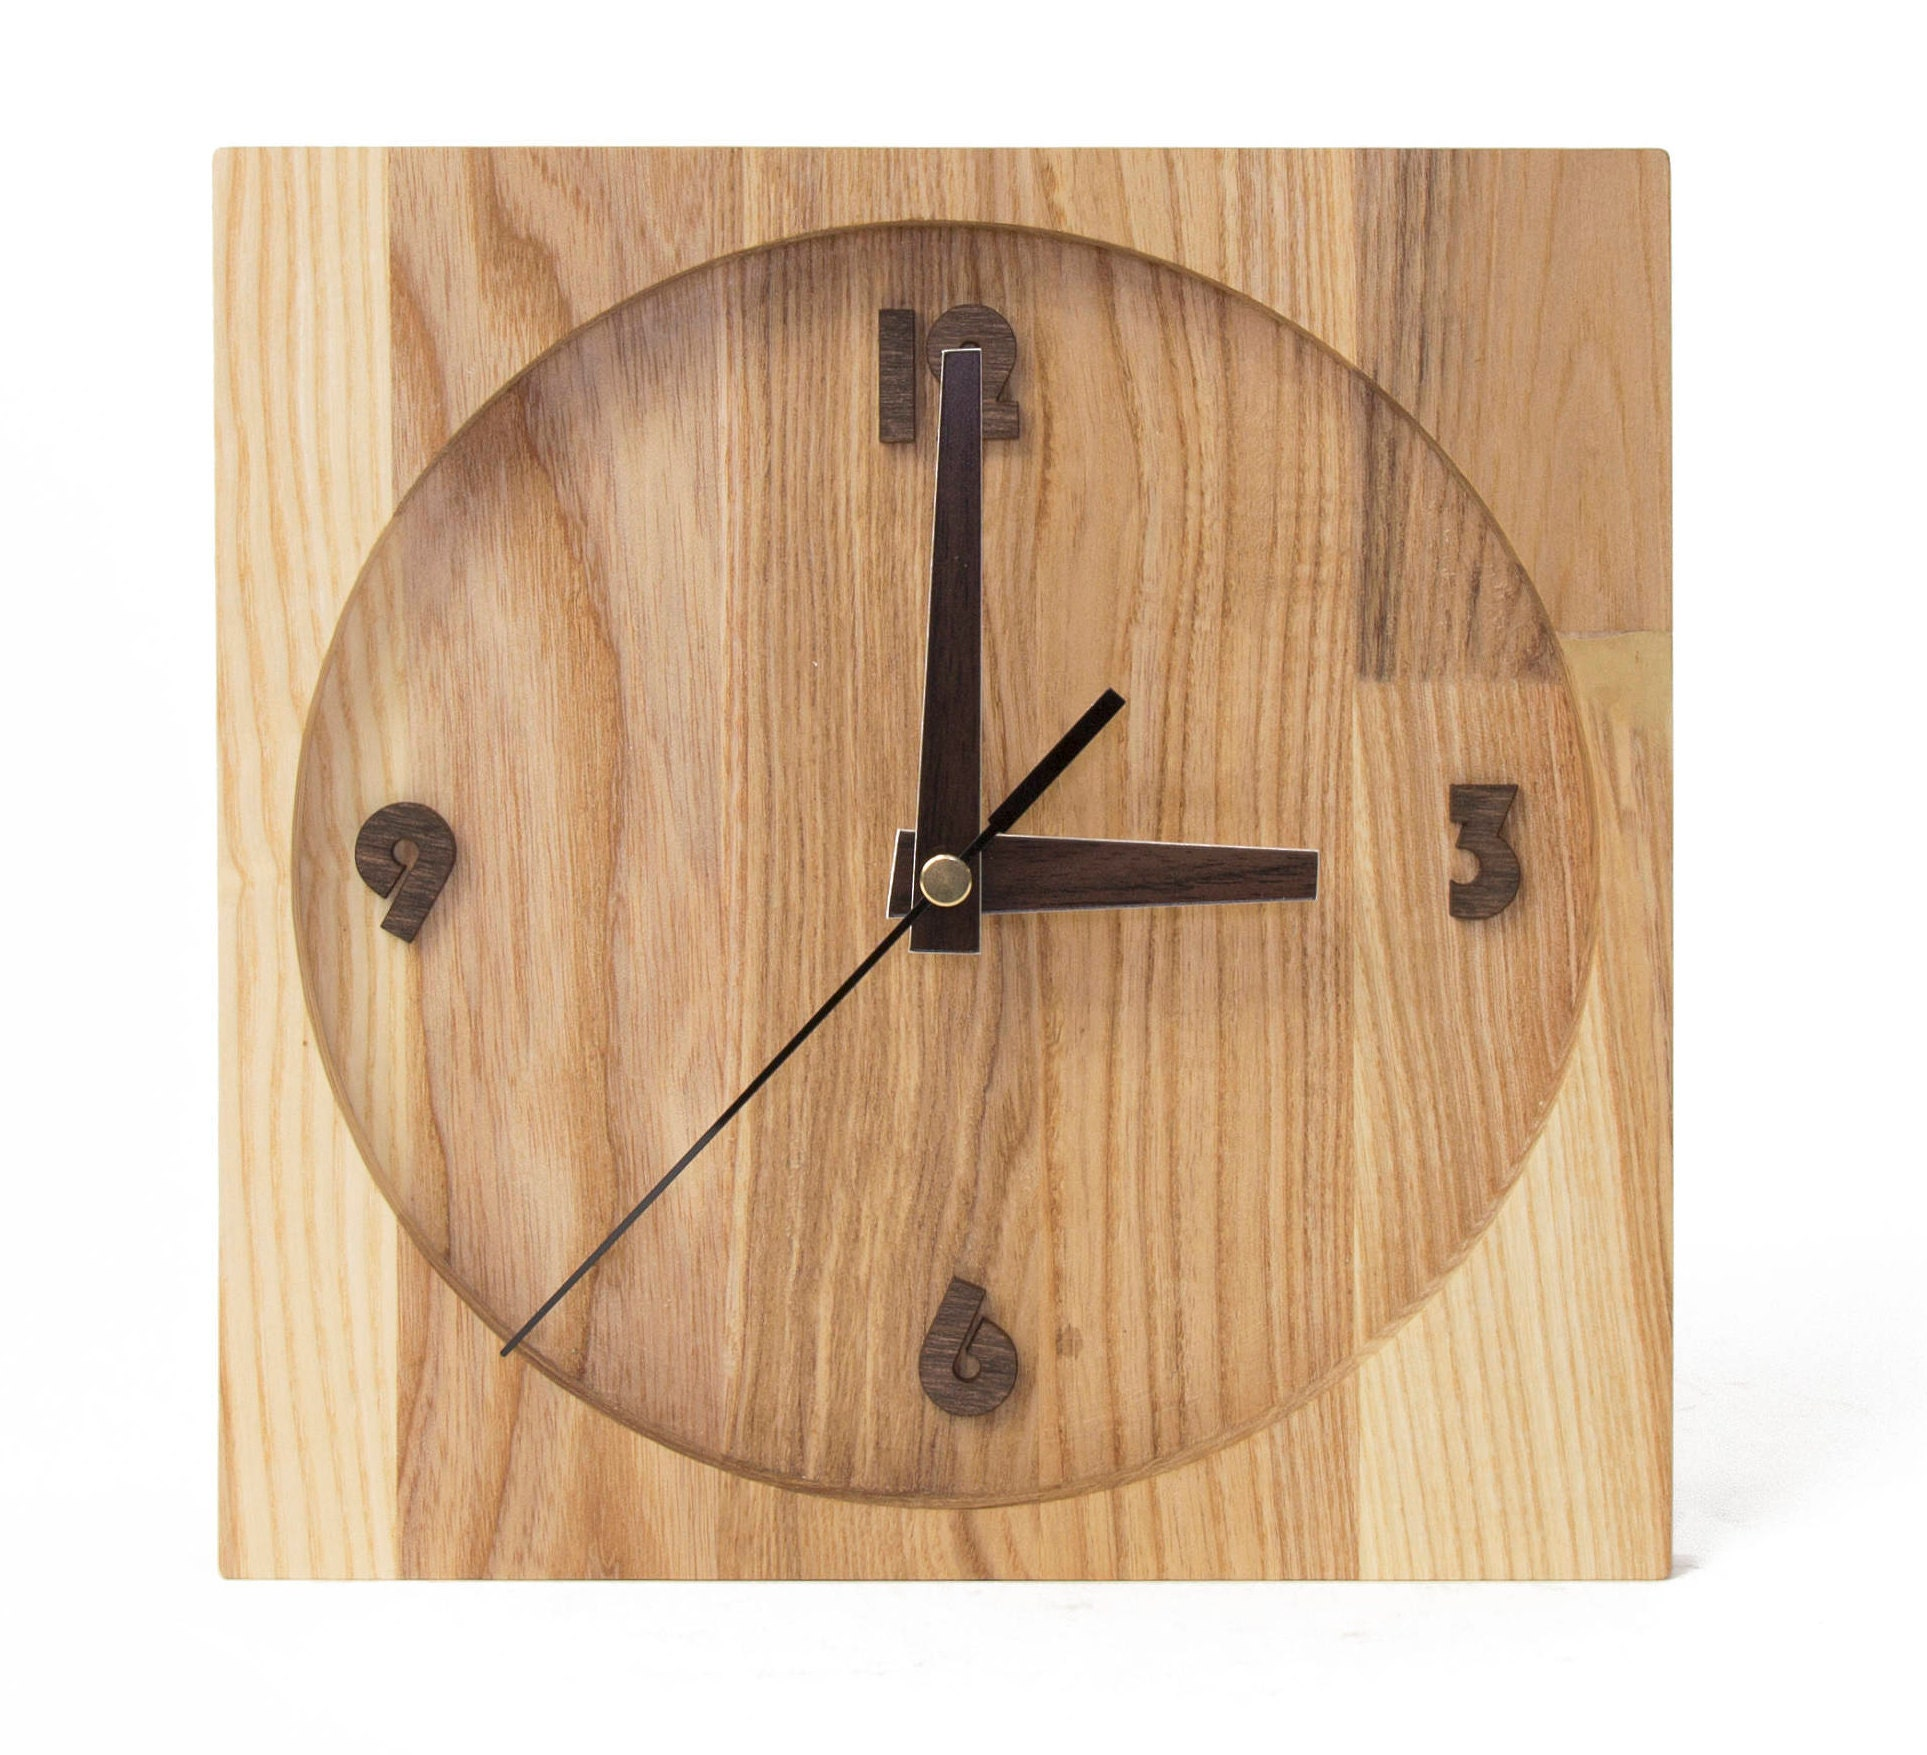 Wood clocks wooden clocks rustic wall clock wooden wall zoom amipublicfo Image collections